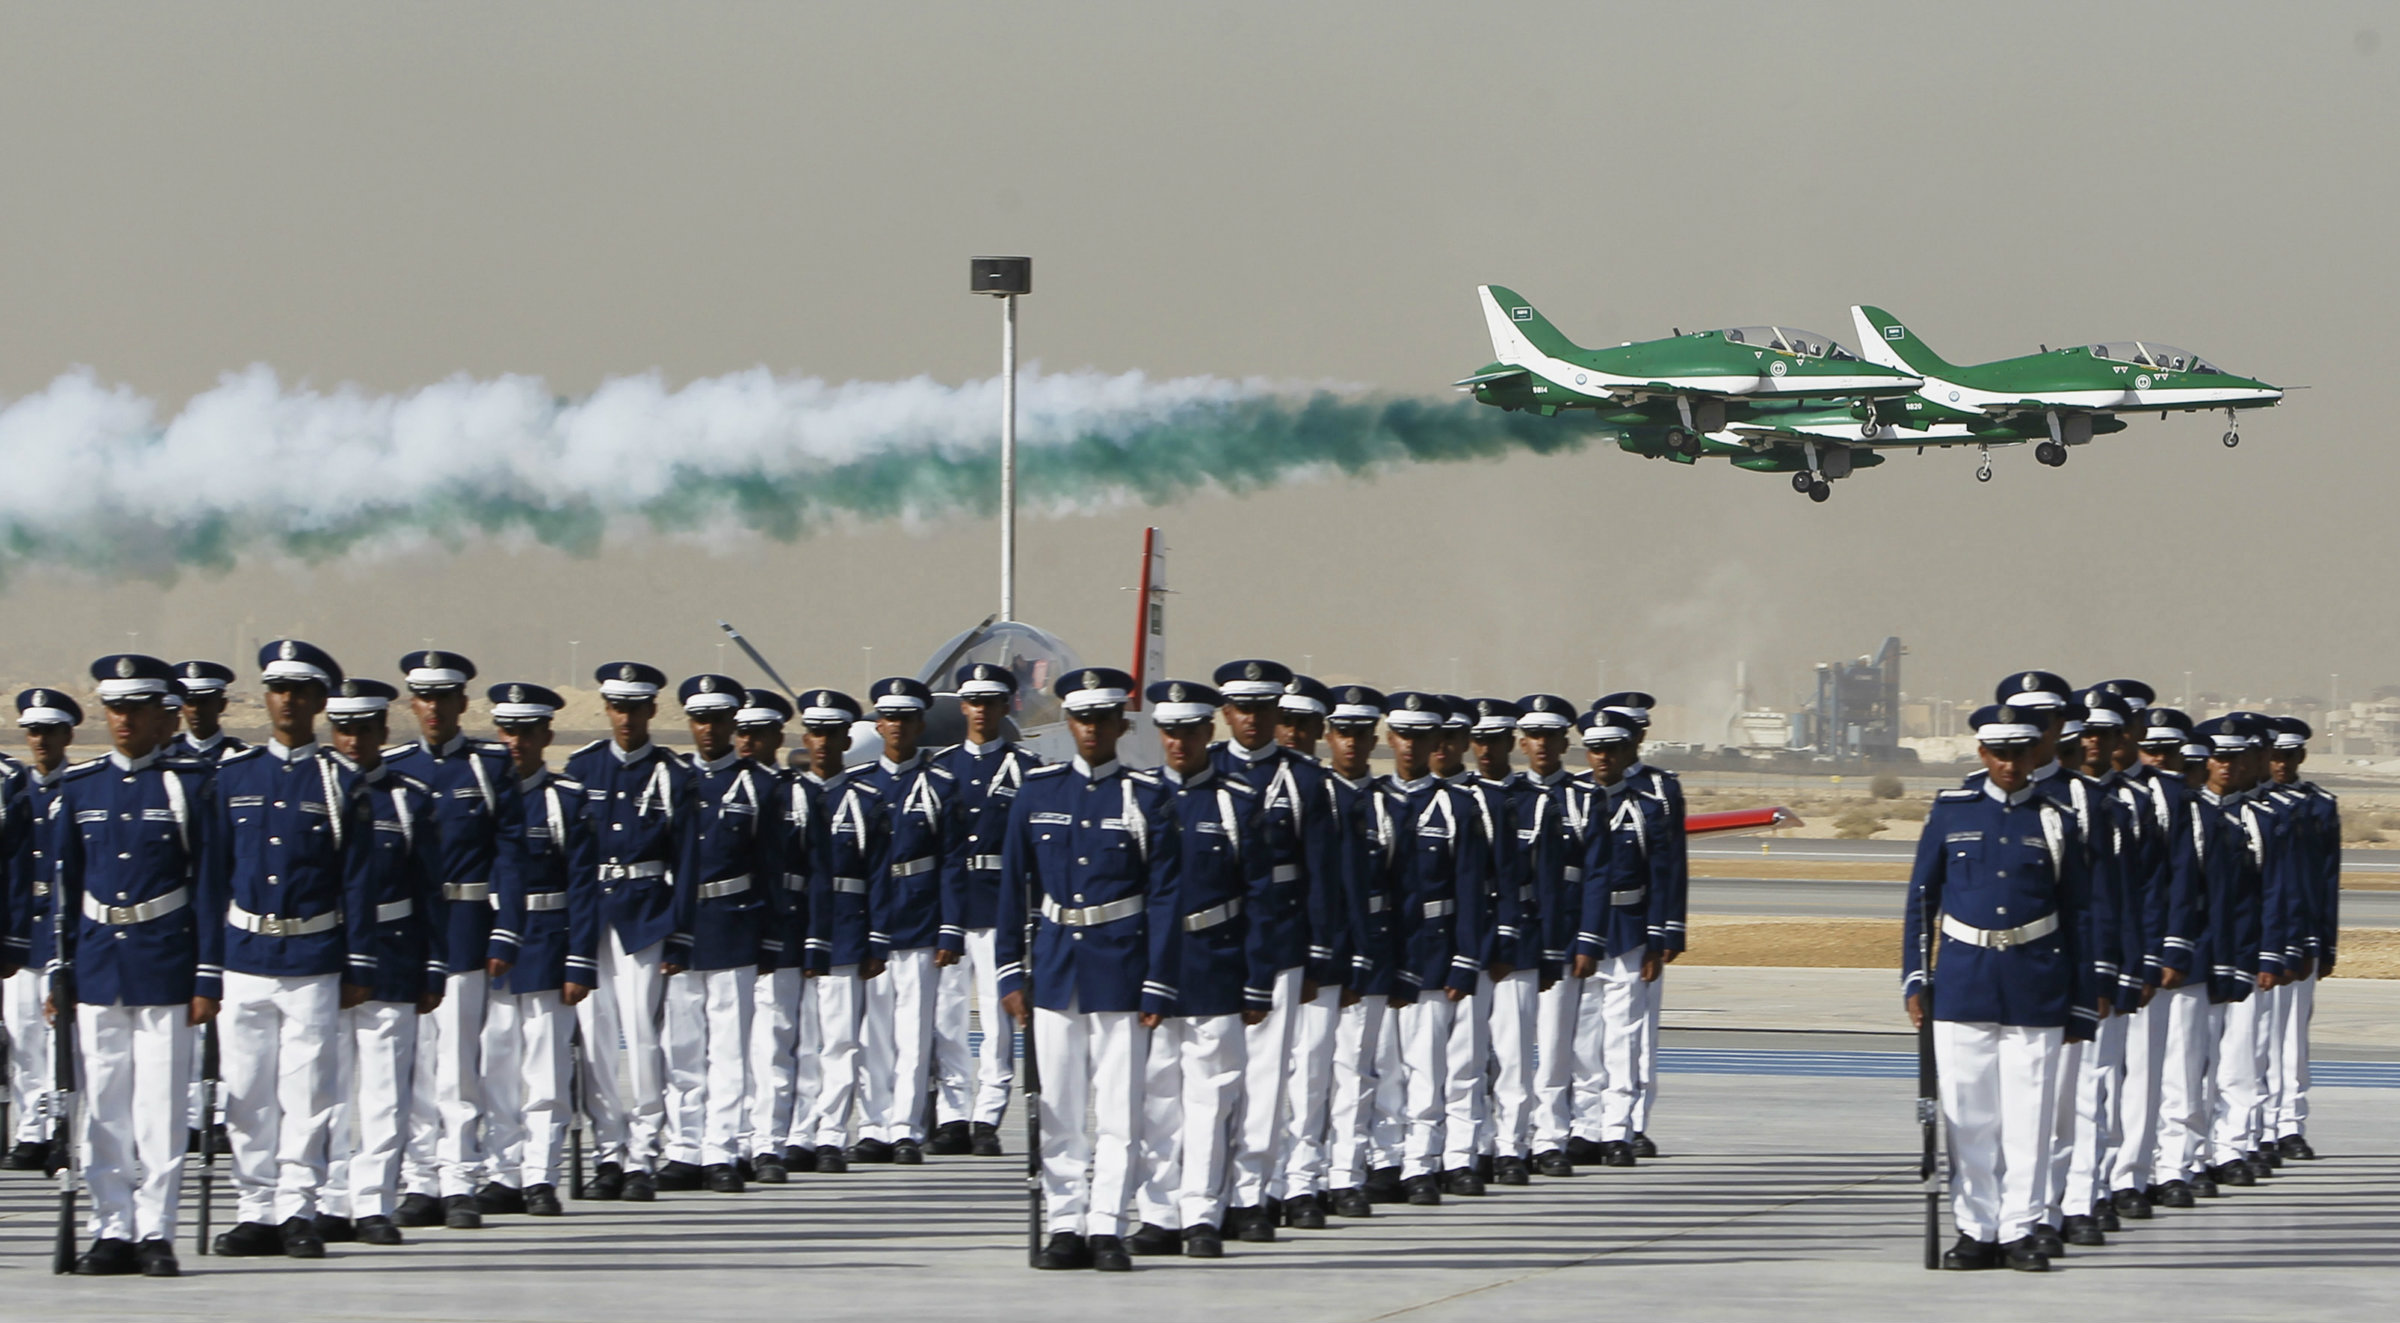 Royal Saudi Air Force jets fly in formation during a graduation ceremony for air force officers at King Faisal Air Academy in Riyadh January 1, 2013. REUTERS/Fahad Shadeed (SAUDI ARABIA - Tags: MILITARY TRANSPORT)